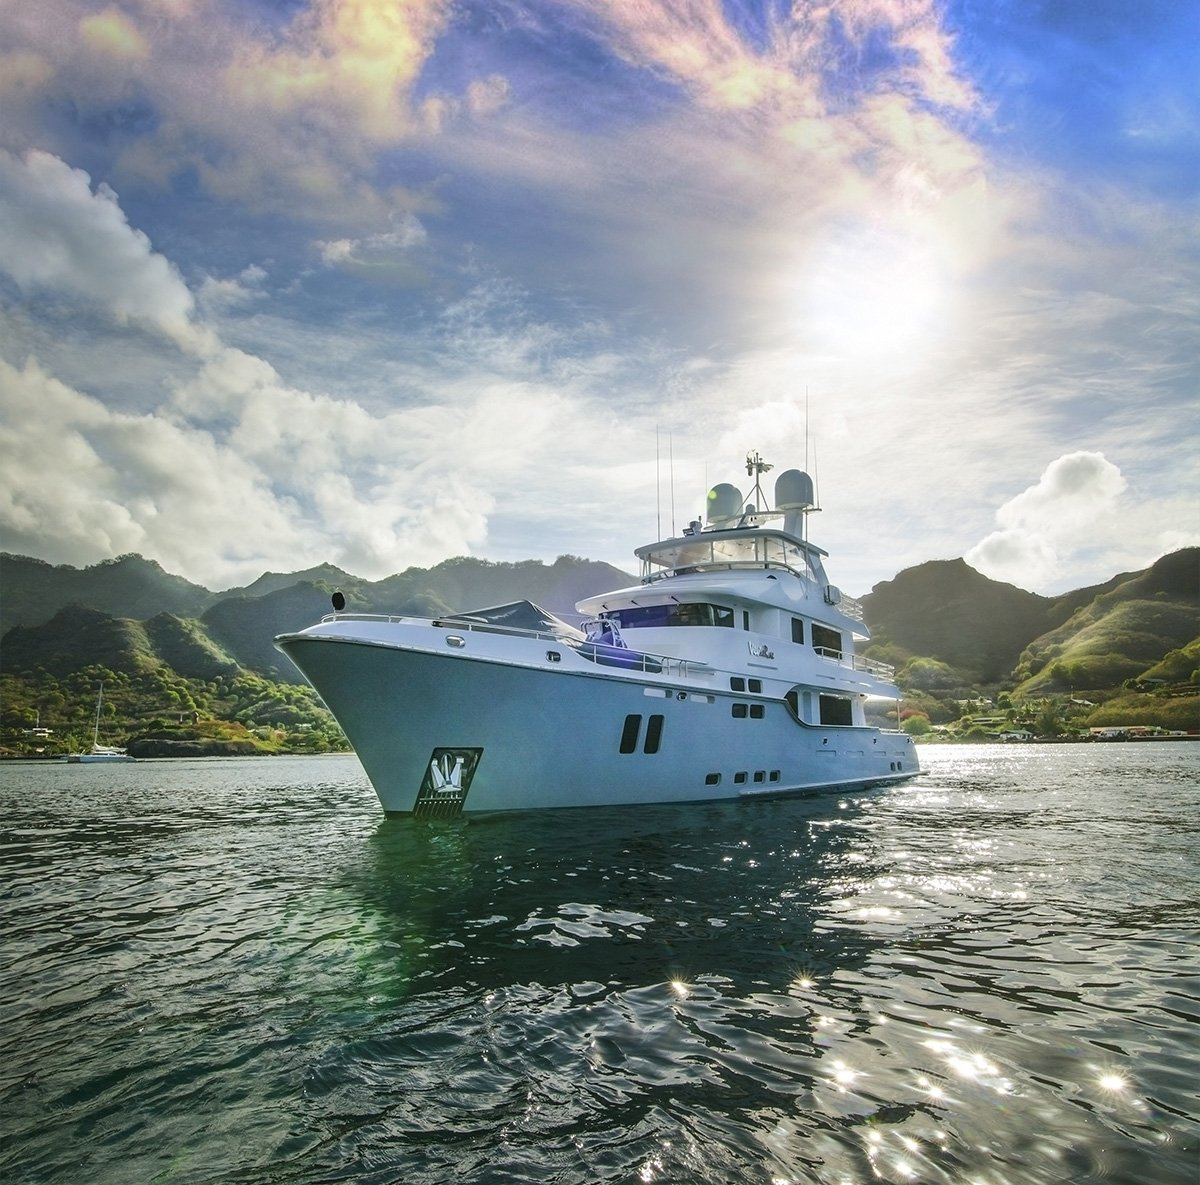 Nordhavn Yachts on Twitter: